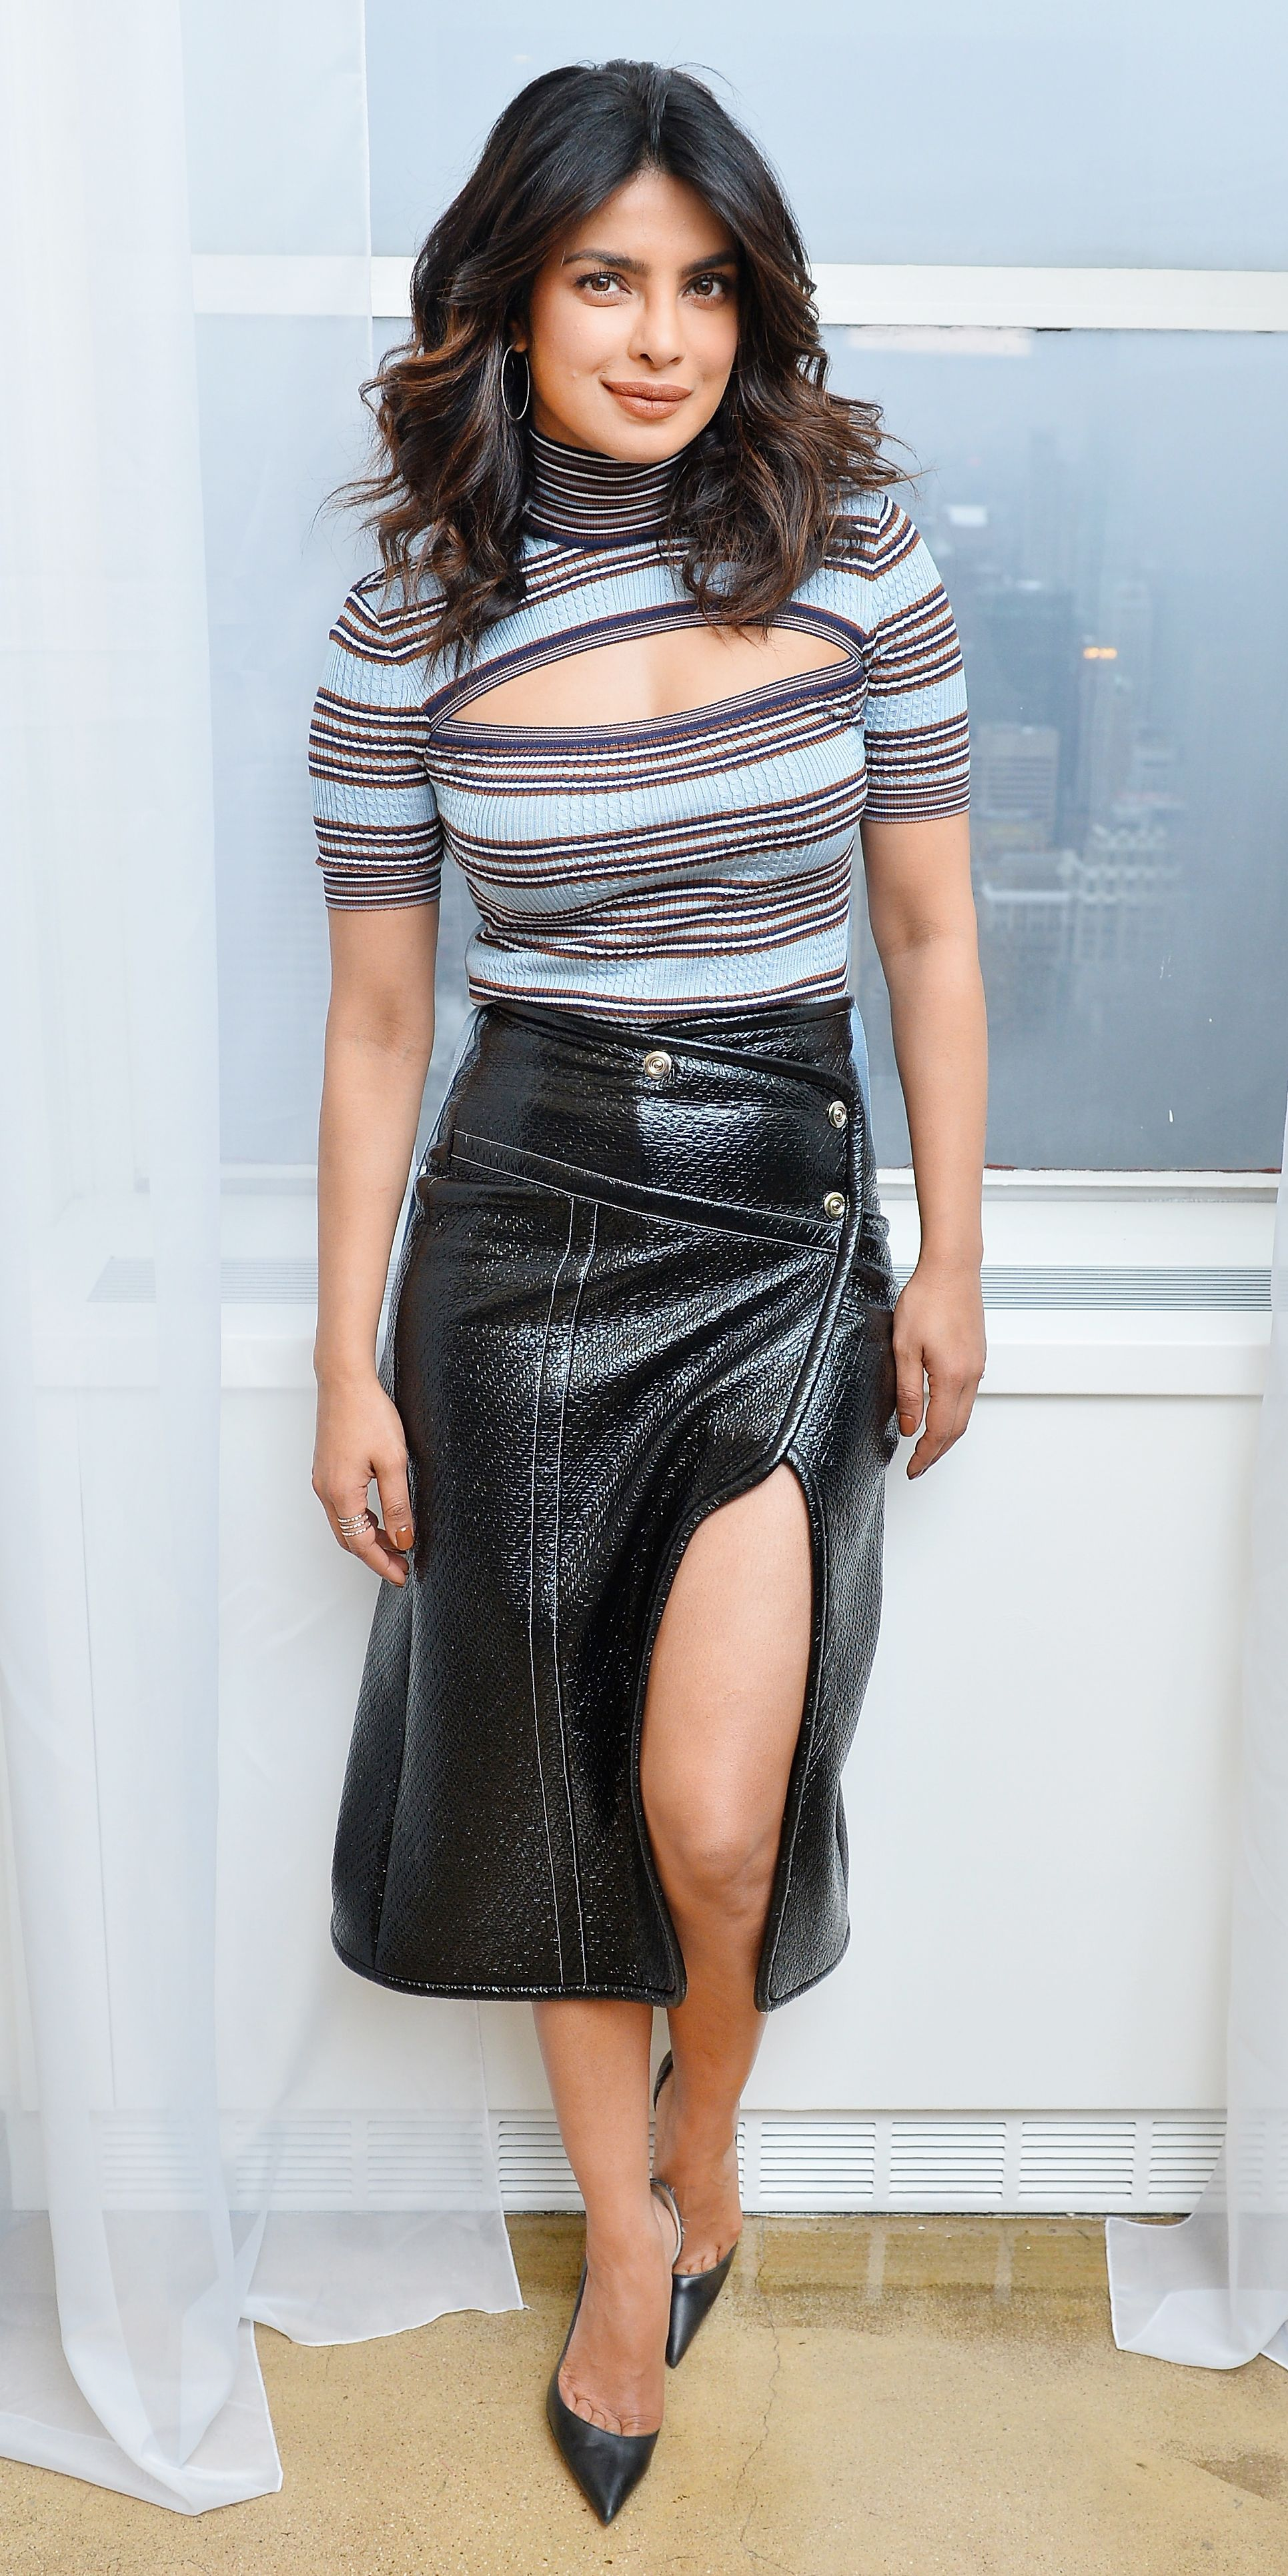 6d482885c54 Priyanka Chopra proved that turtlenecks don t have to be boring with a  stripe design featuring a strategically placed cutout. A patent leather  skirt with a ...